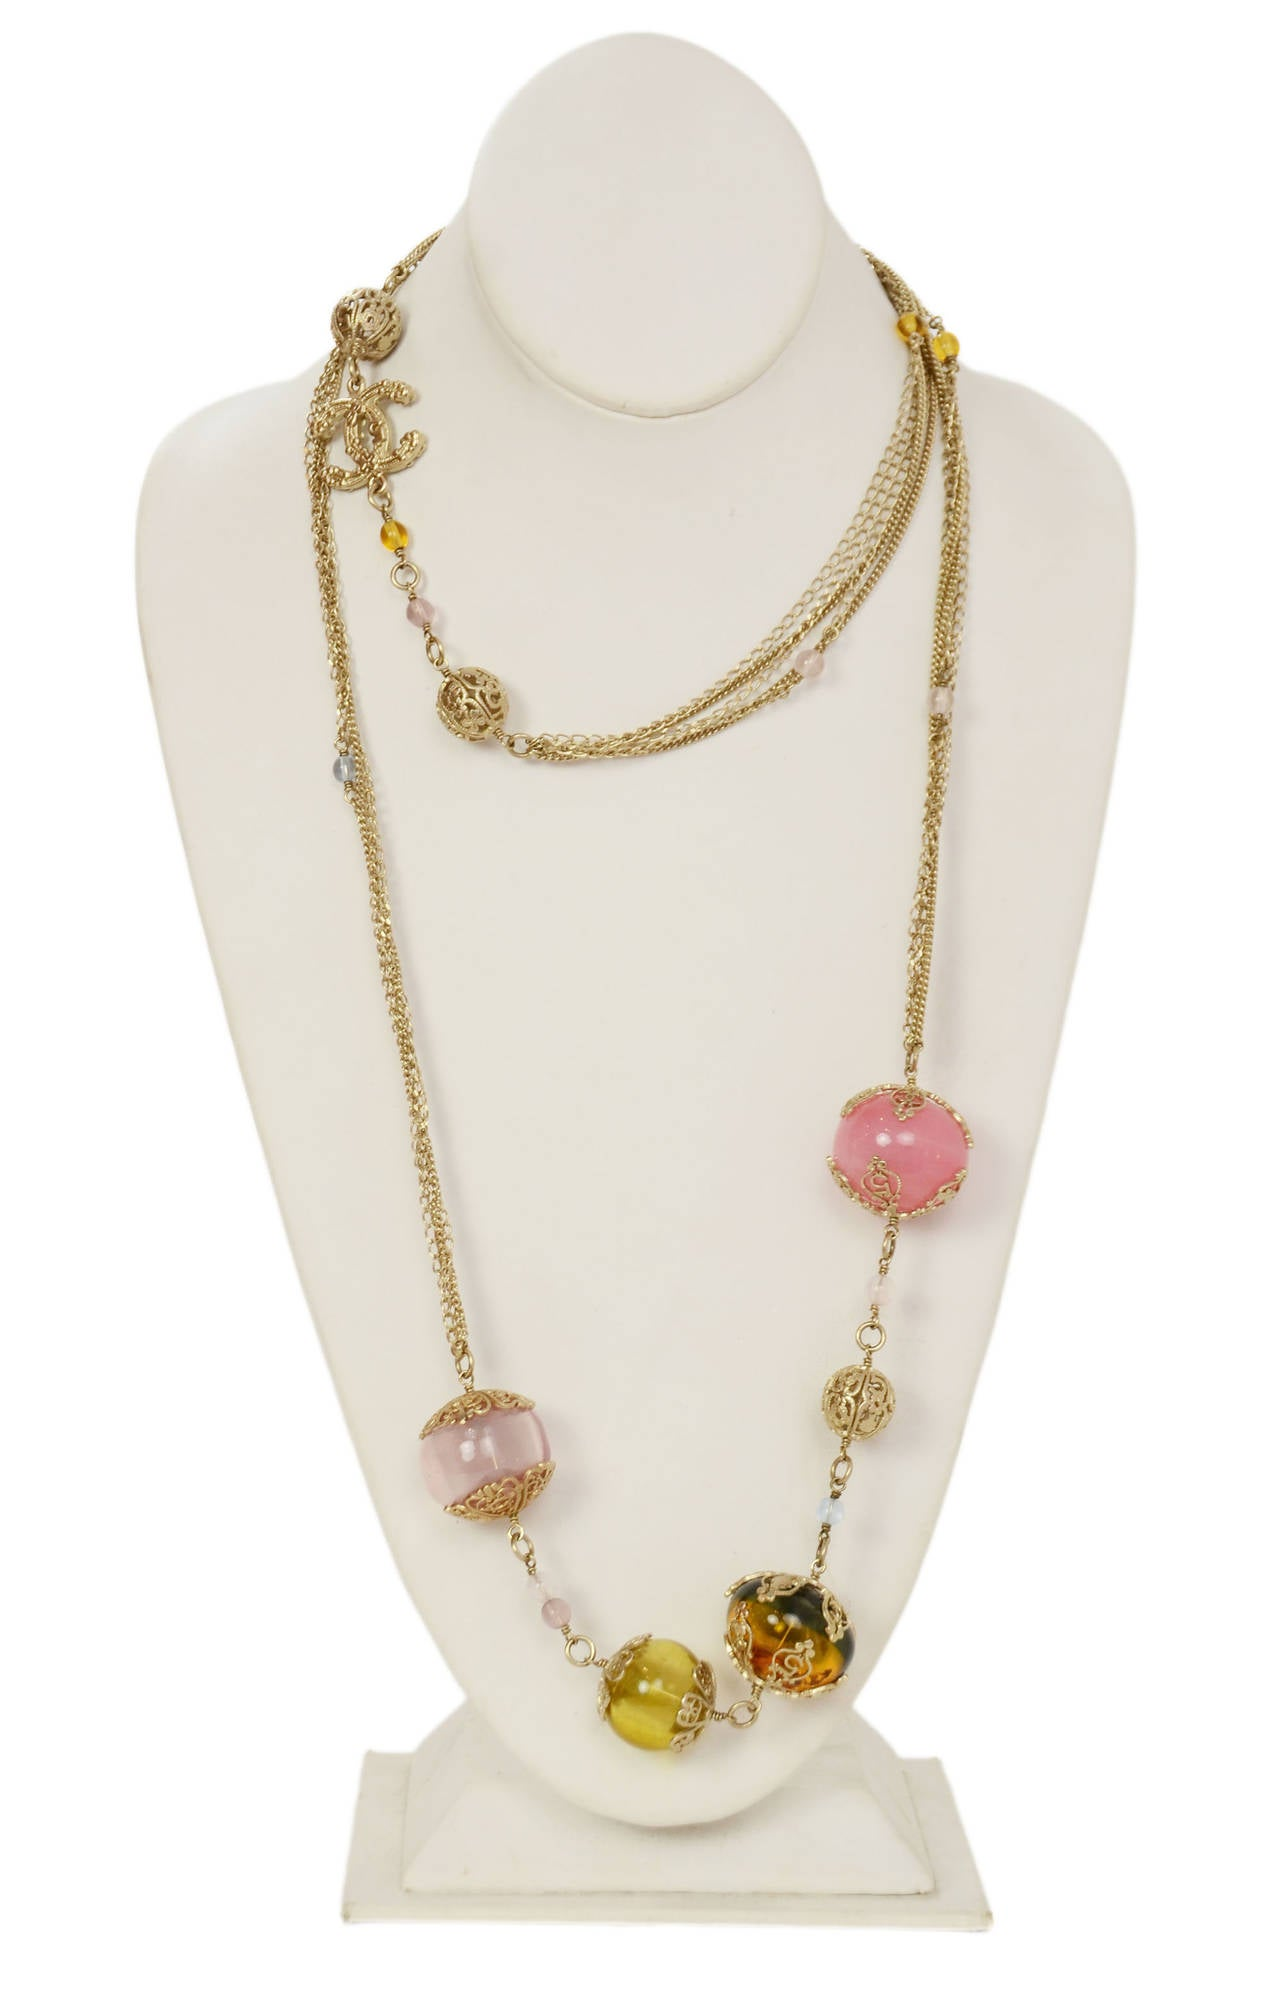 Chanel 2006 Silvertone Long Multi-Strand Necklace w/Pastel Glass Beads 2